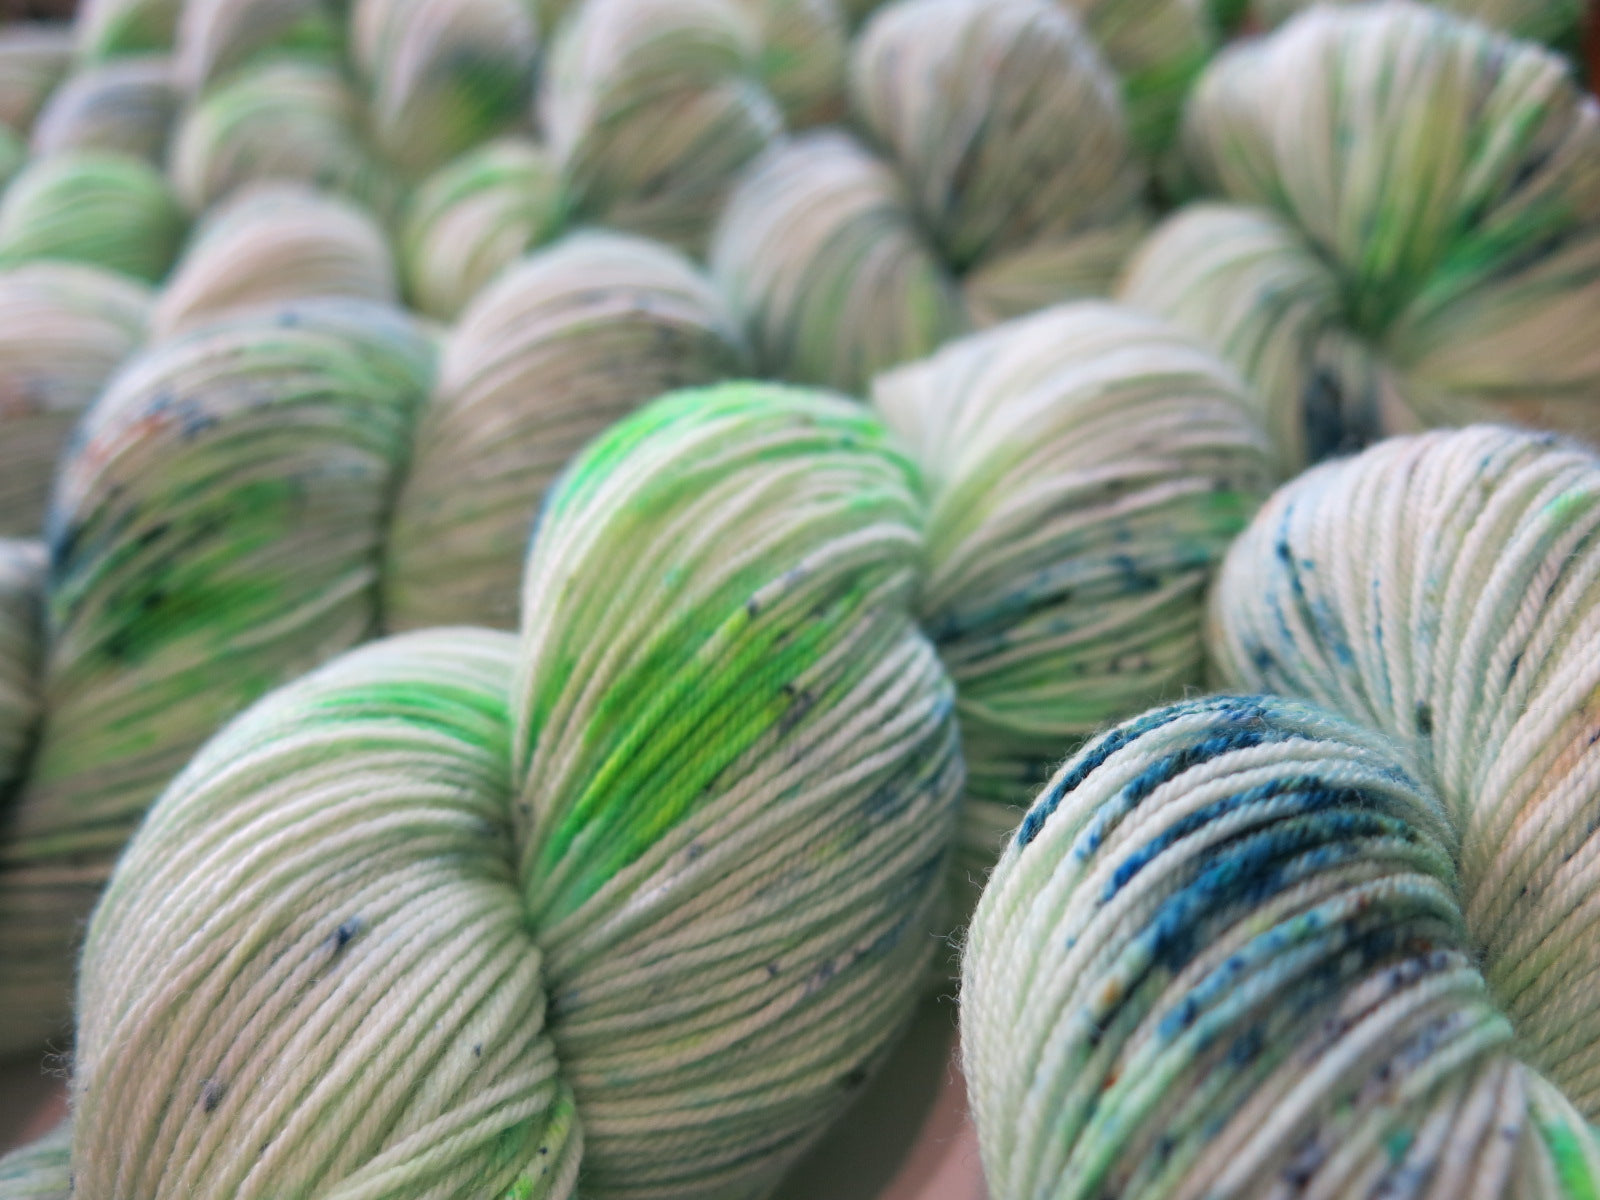 speckled uv reactive green yarn skeins for knitting, embroidery and crochet